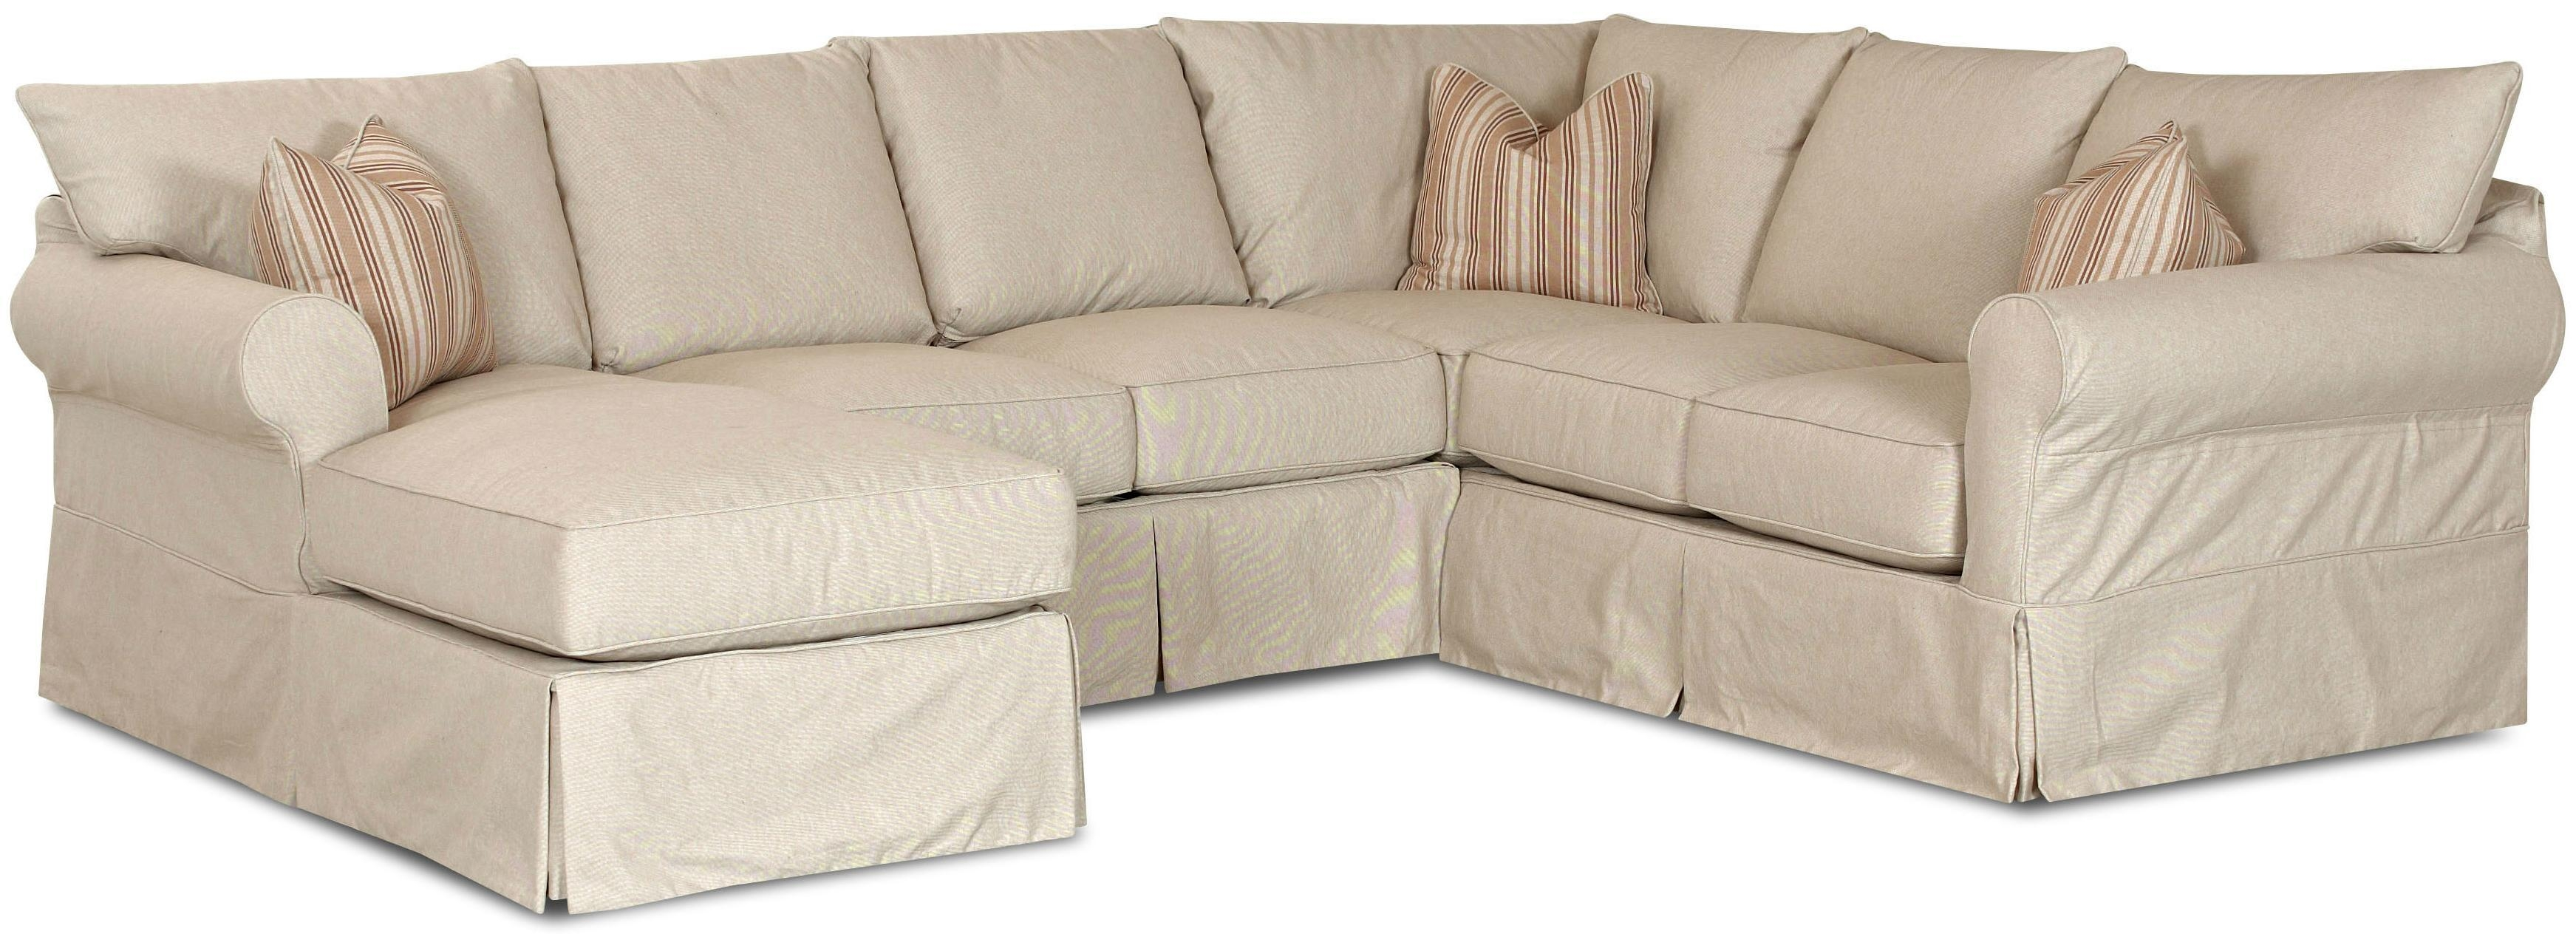 Inspirations: Interesting Furniture Sectional Sofa Slipcovers For With Regard To Chaise Sofa Covers (View 4 of 20)